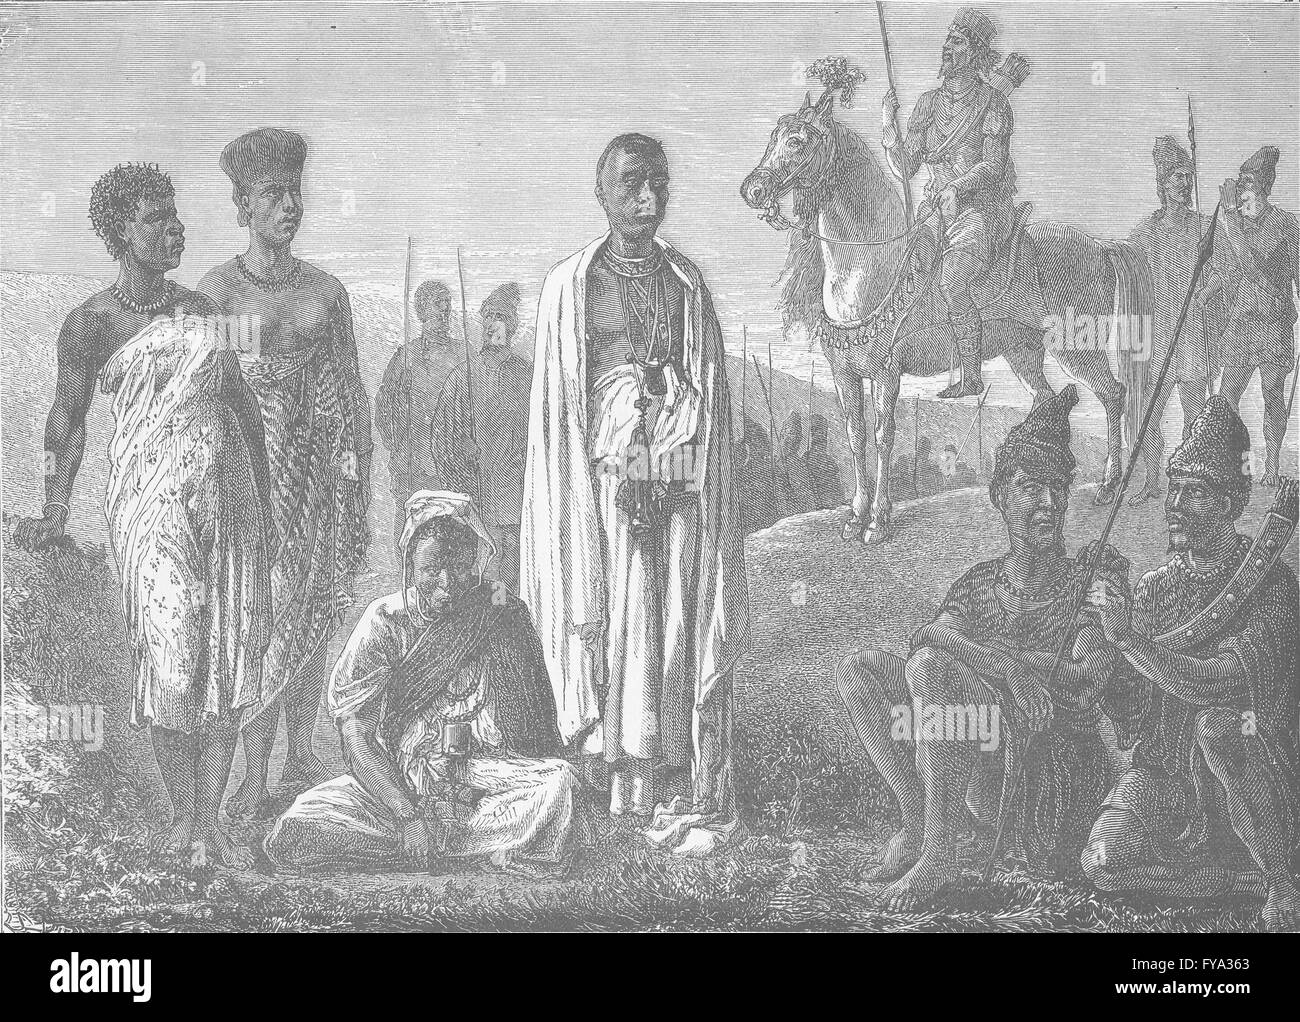 LIBERIA: Typical tribes of the North-West Coast of Africa, antique print 1890 - Stock Image